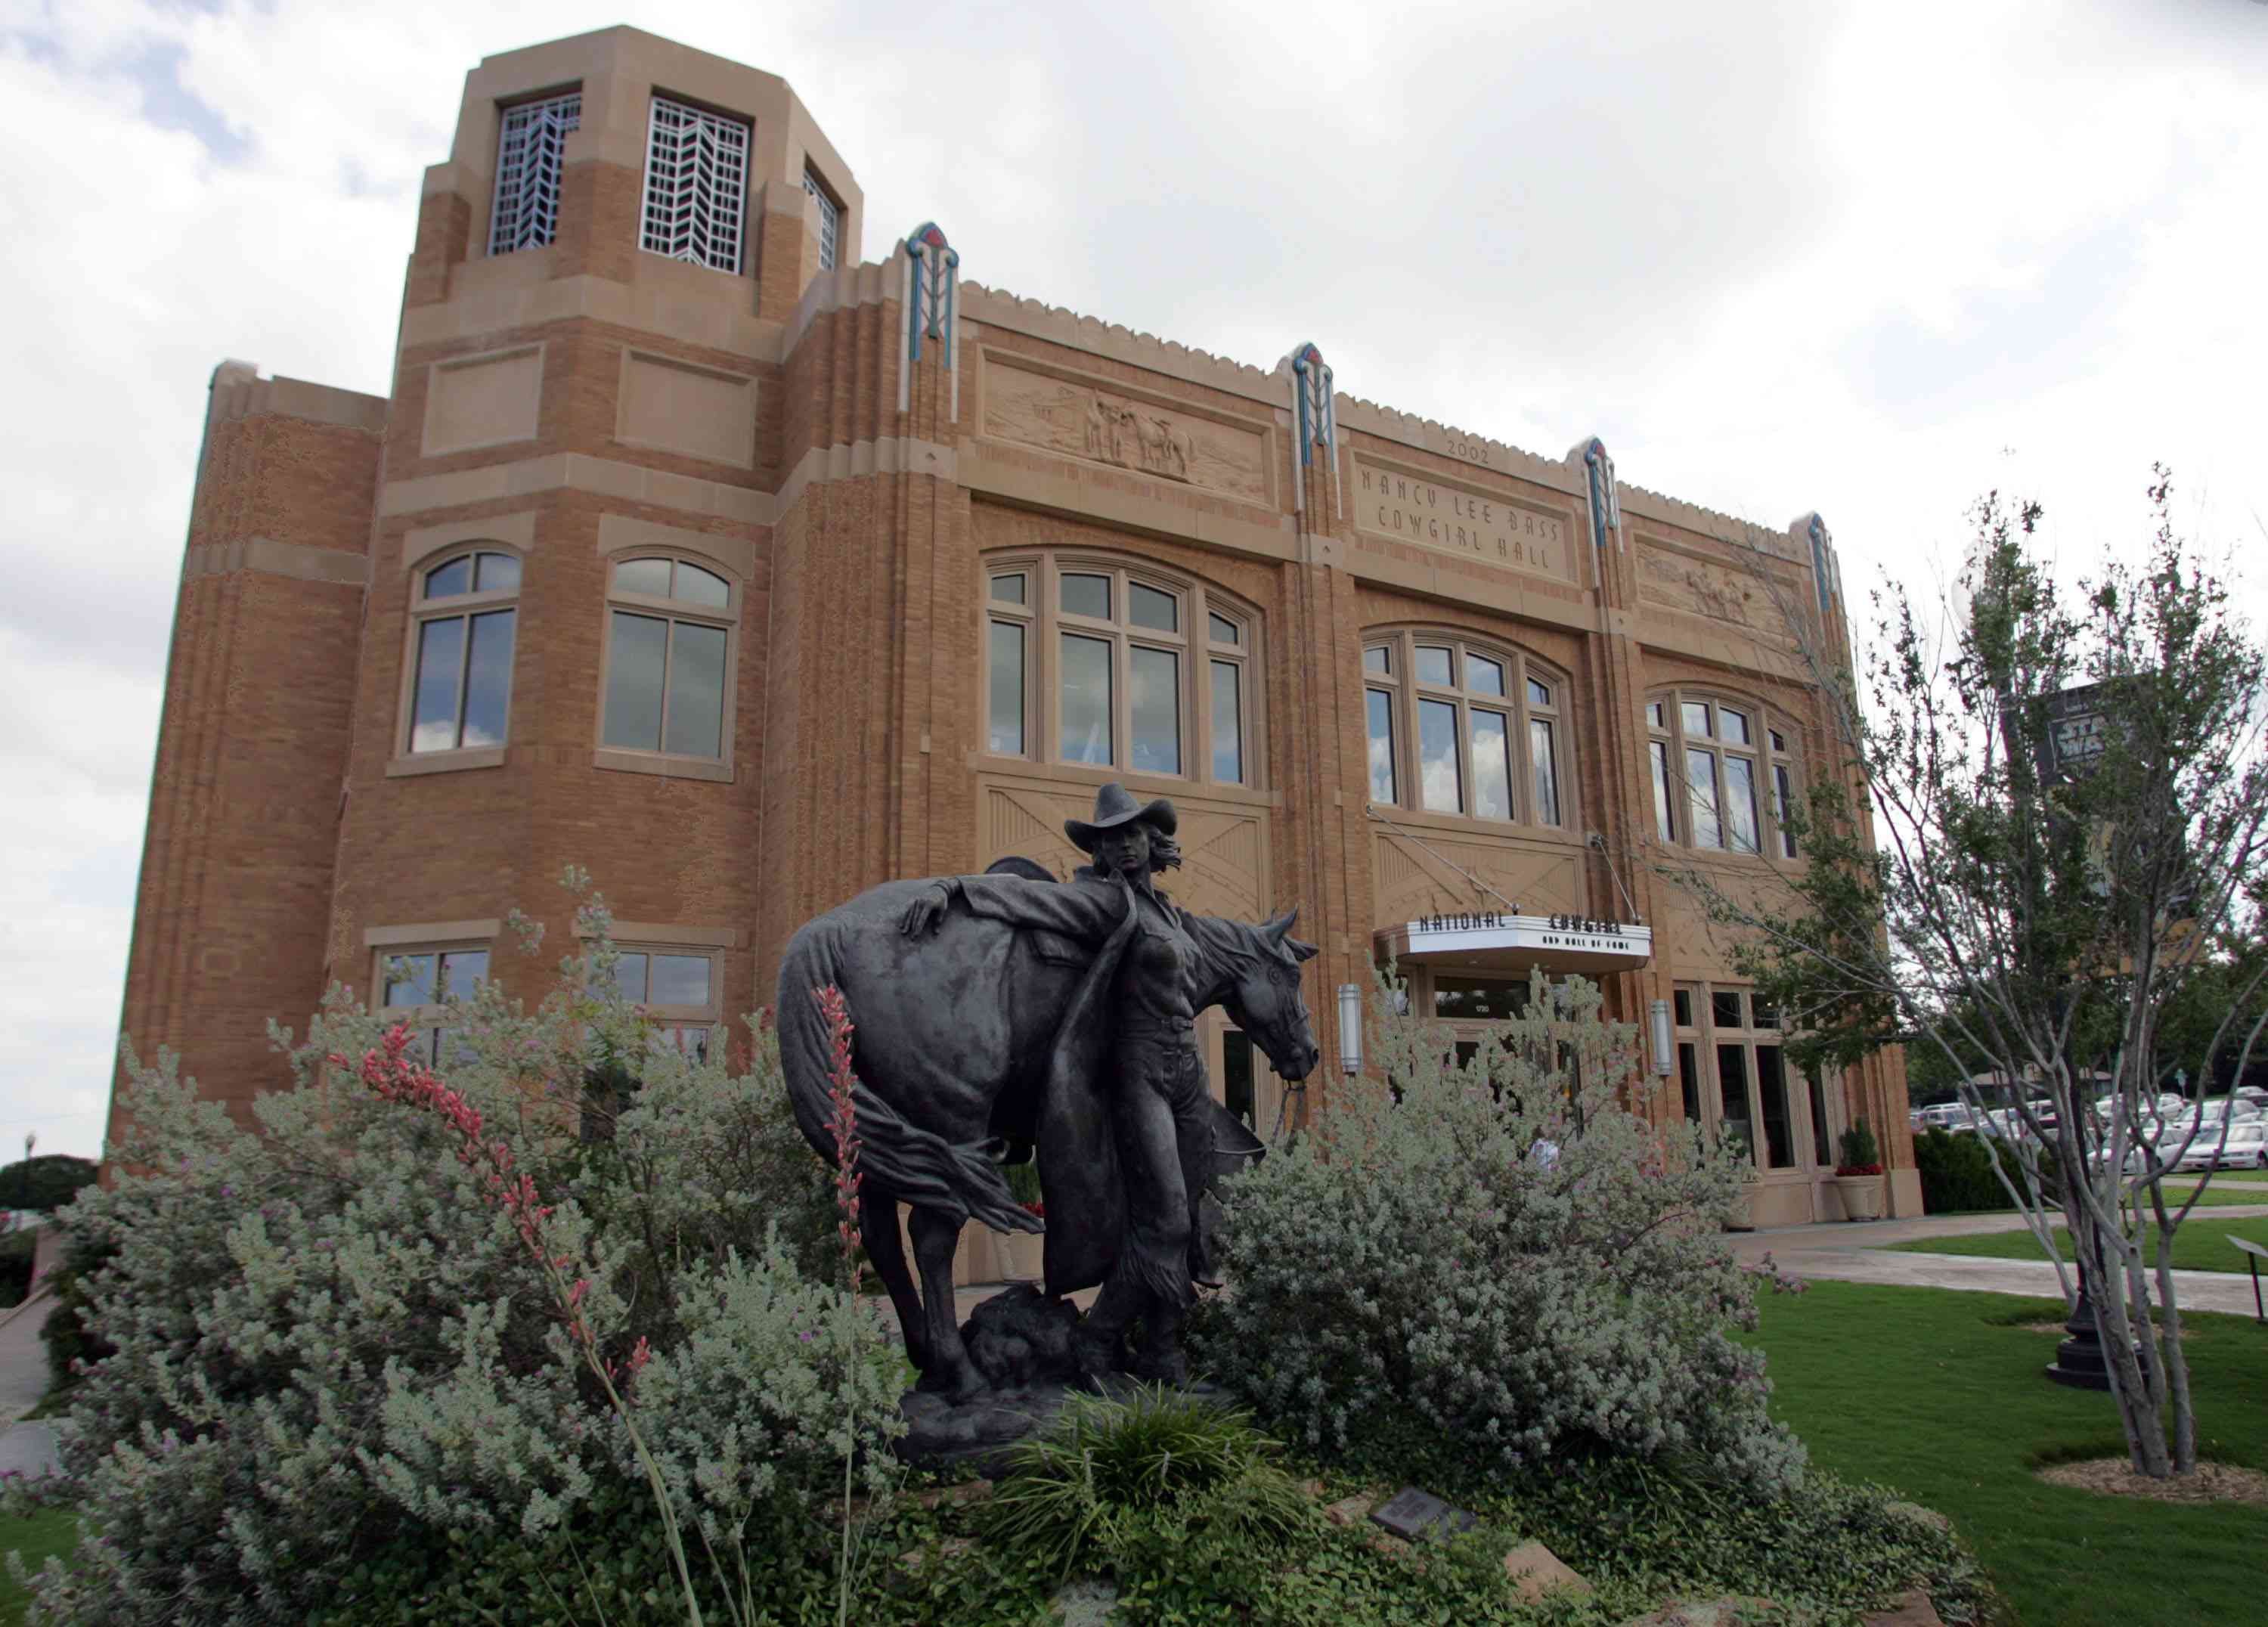 USA - Museums - Cowgirl Museum and Hall of Fame